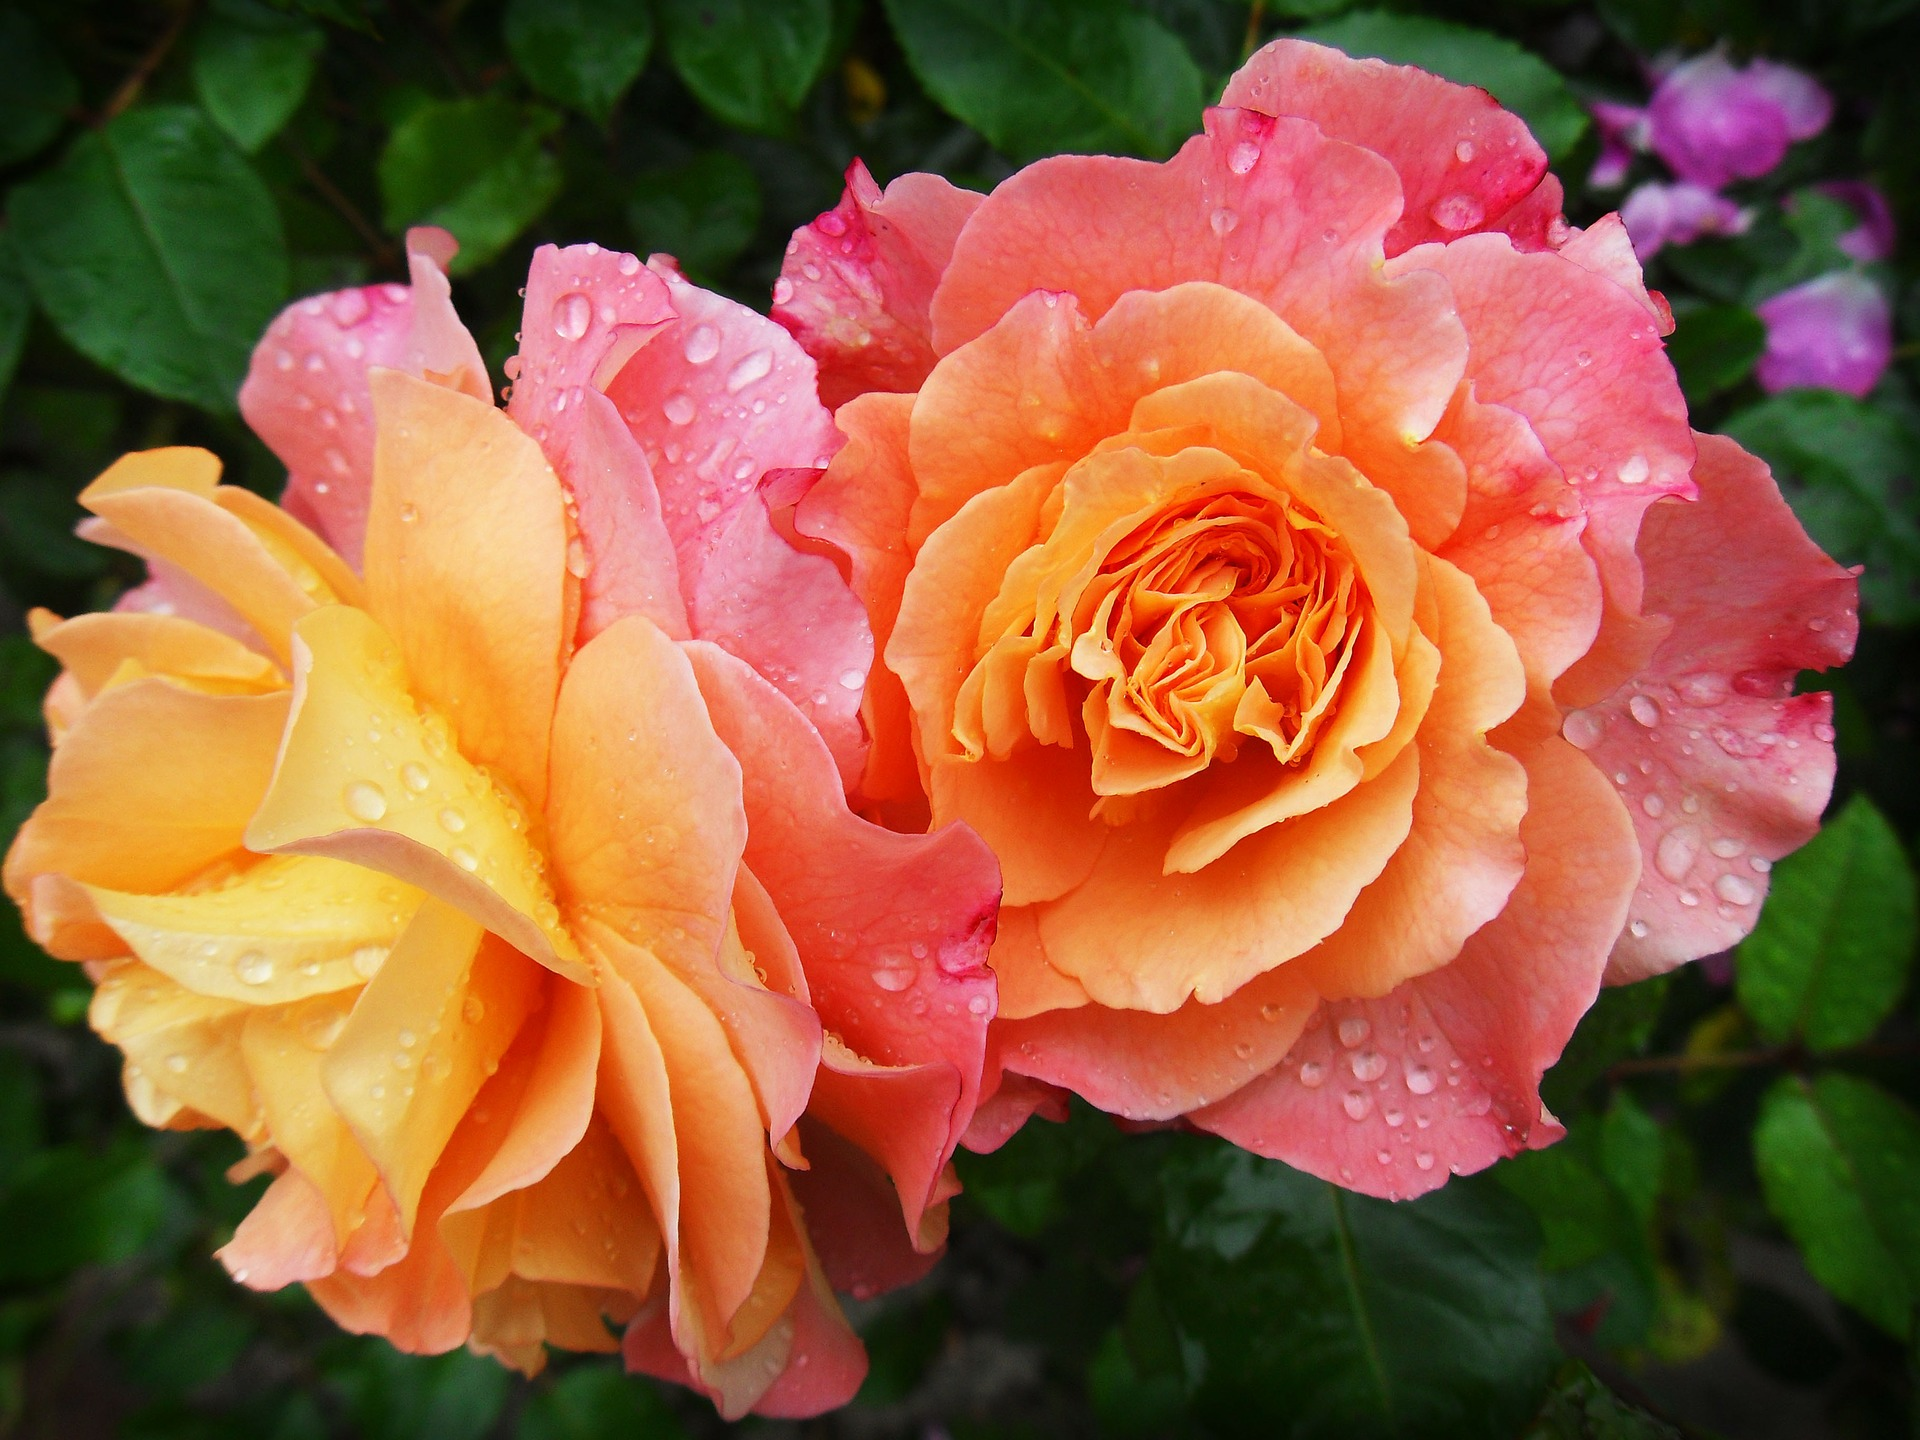 orange-rosa Rosenblüten